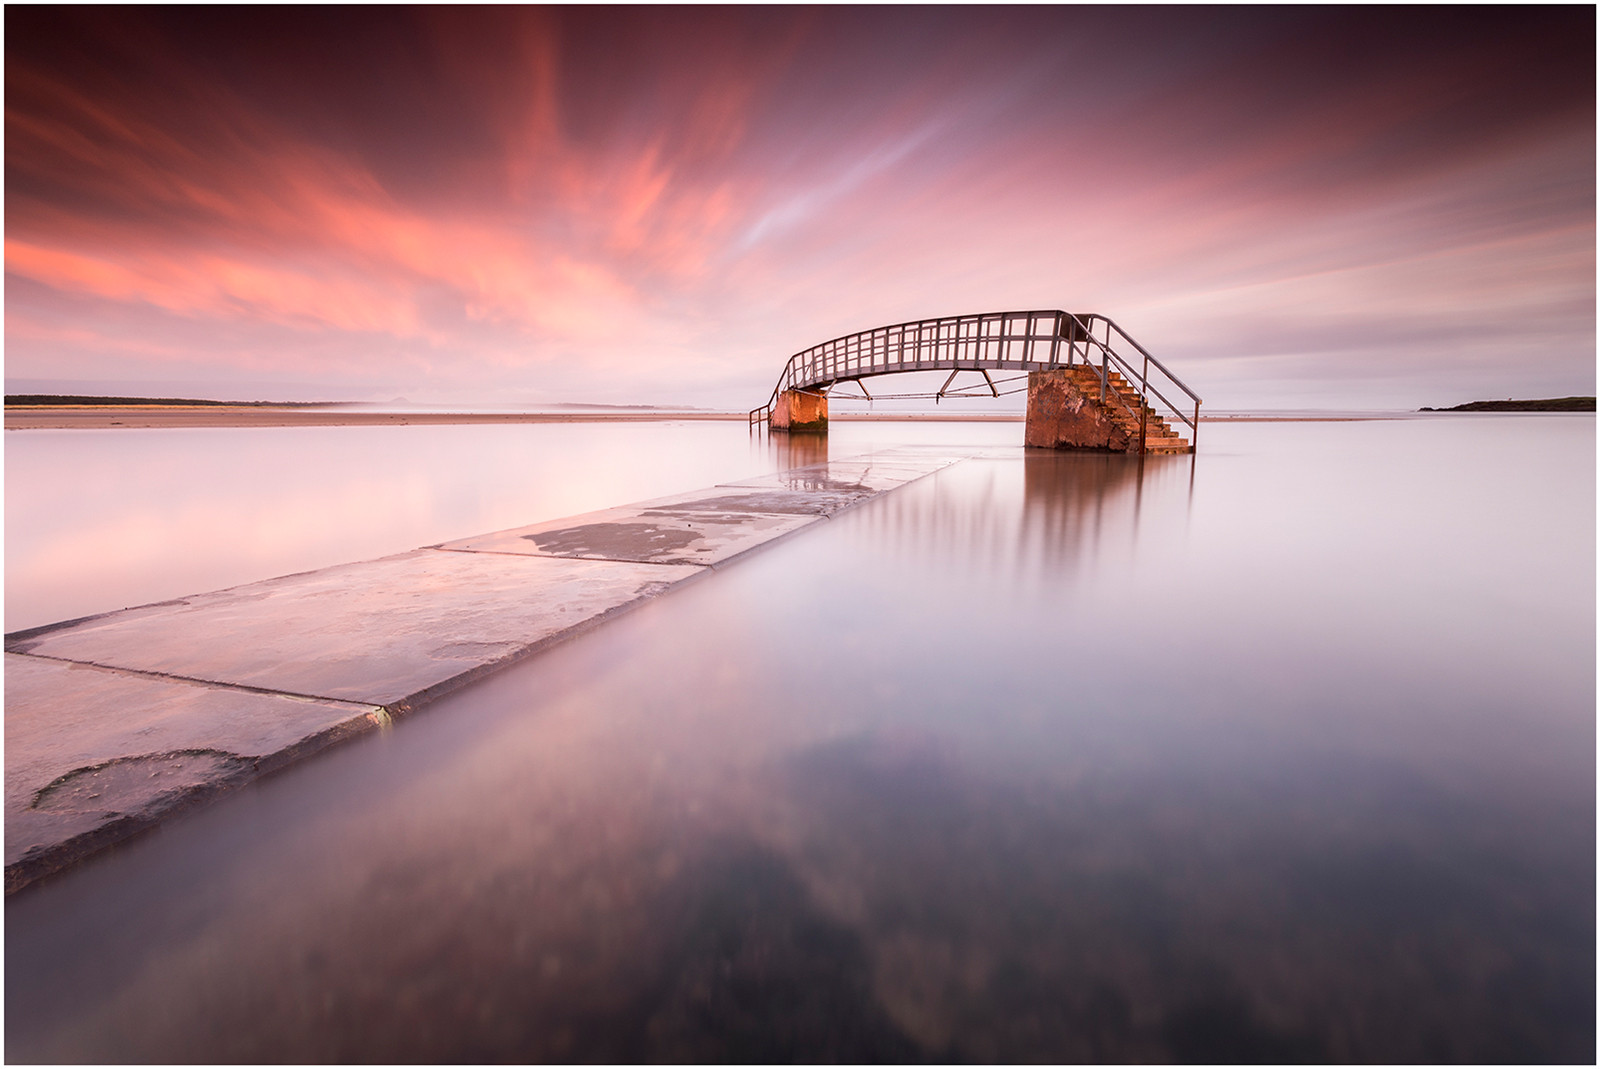 COLOUR - BRIDGE TO NOWHERE by PAUL KILLEEN (15 marks)